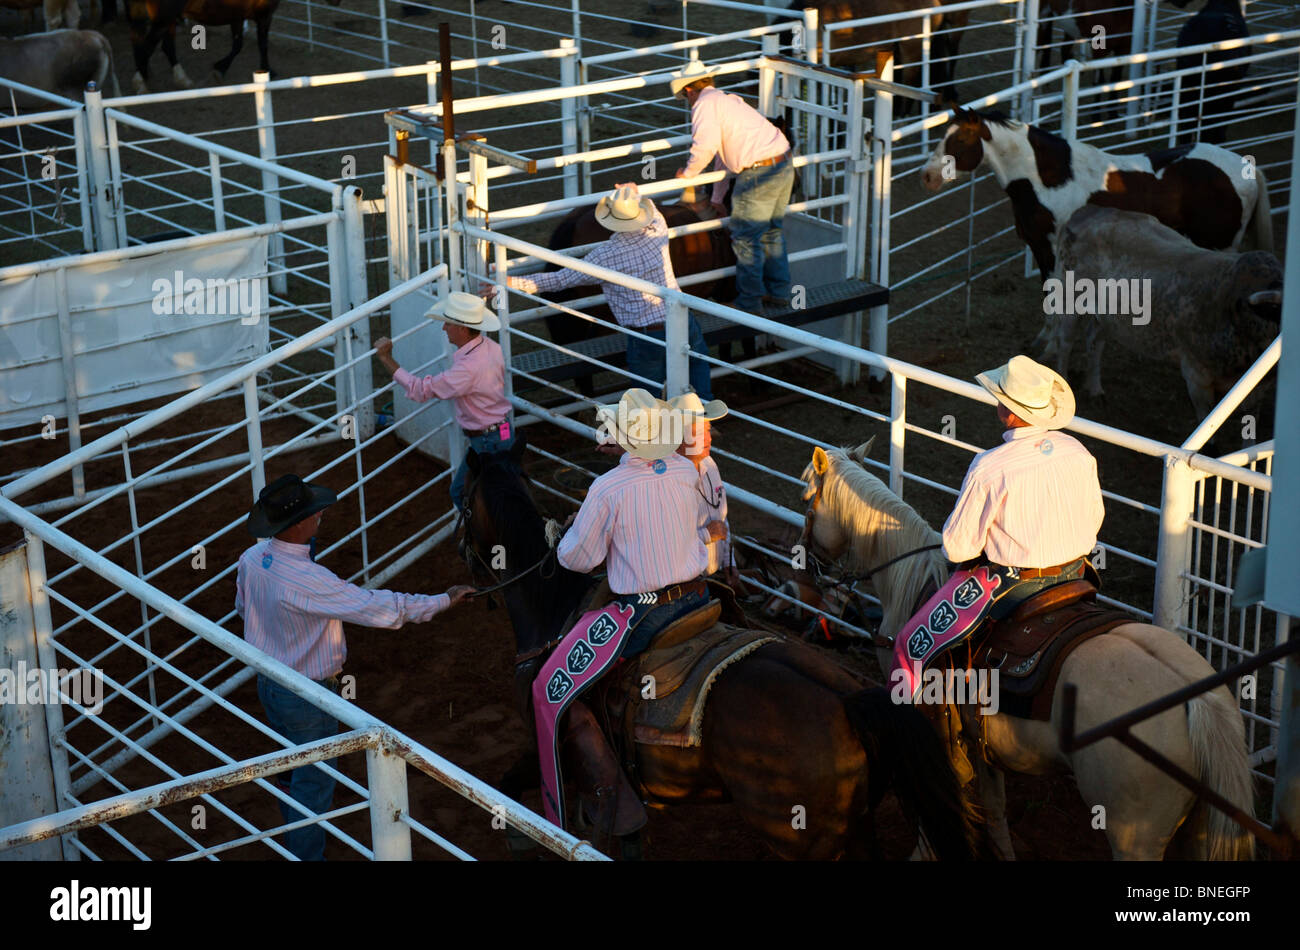 Cowboys members of PRCA rodeo backstage preparing for rodeo event at Smalltown in Bridgeport, Texas, USA Stock Photo